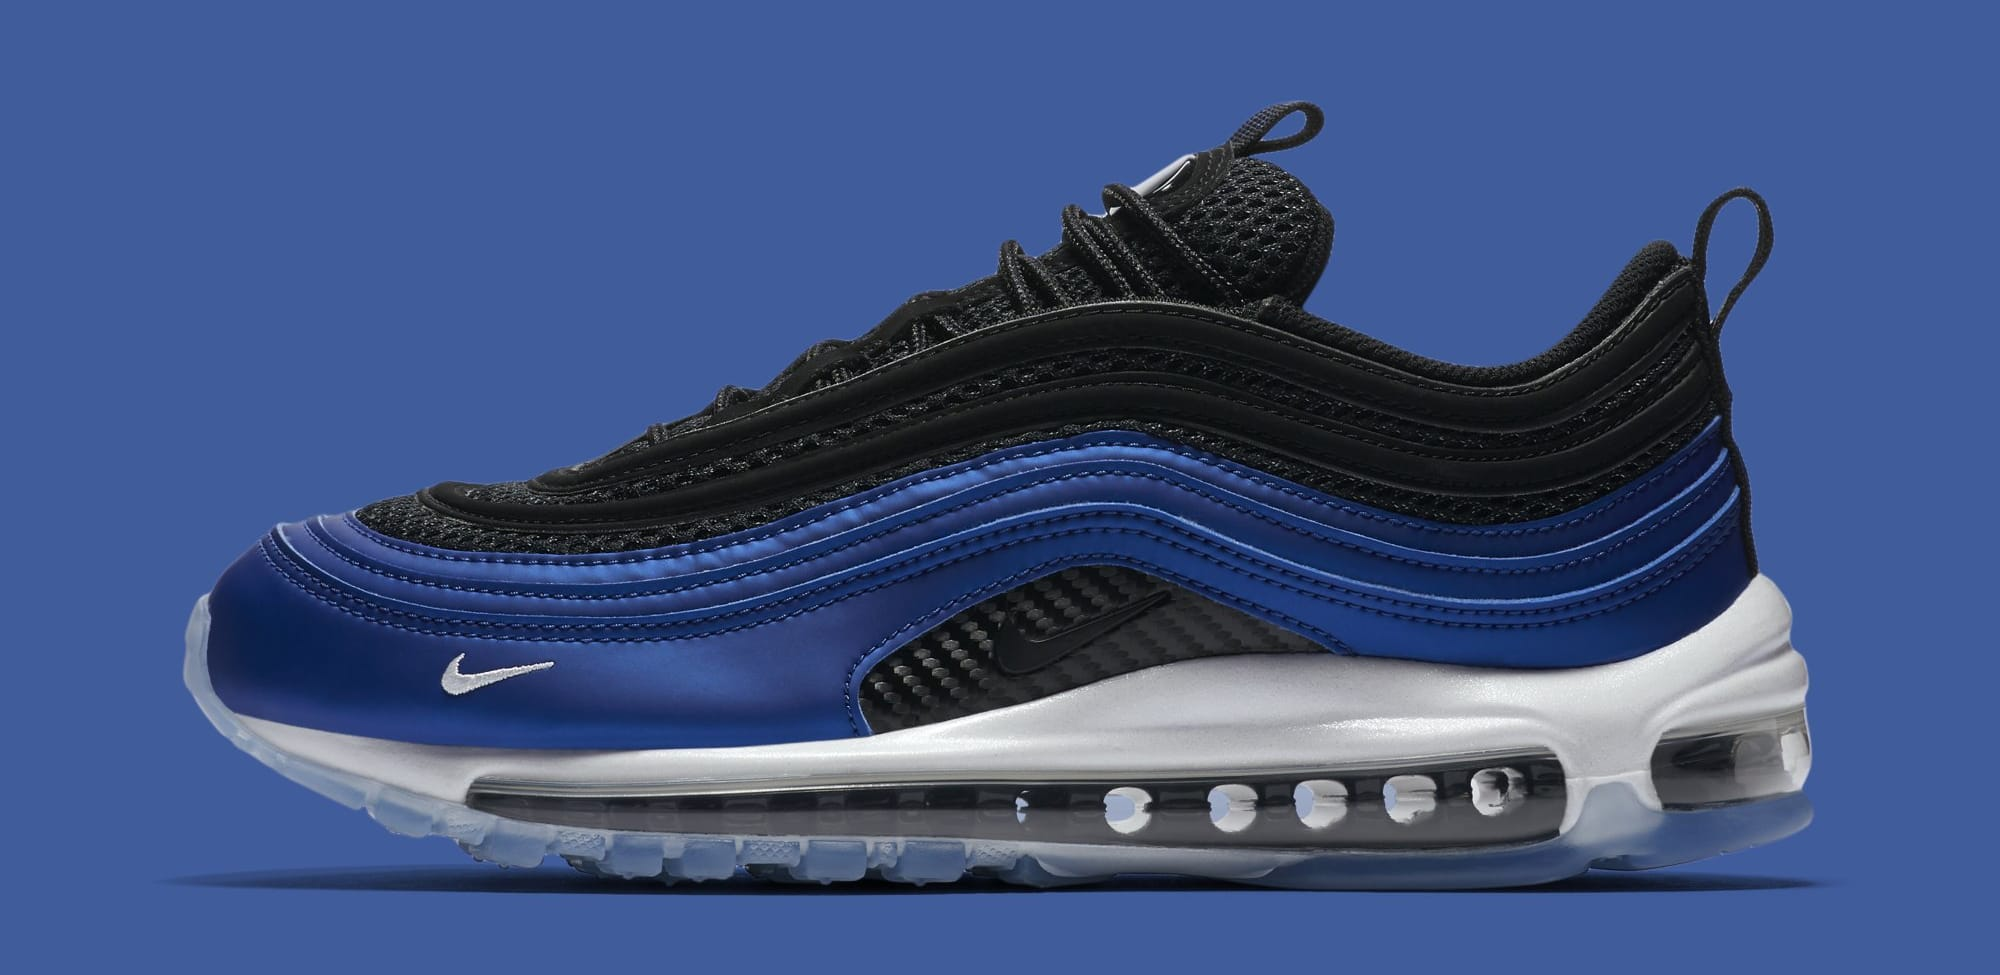 info for 4c828 de3a5 Nike Air Max 97 'Foamposite' Game Royal/White-Black CI5011 ...